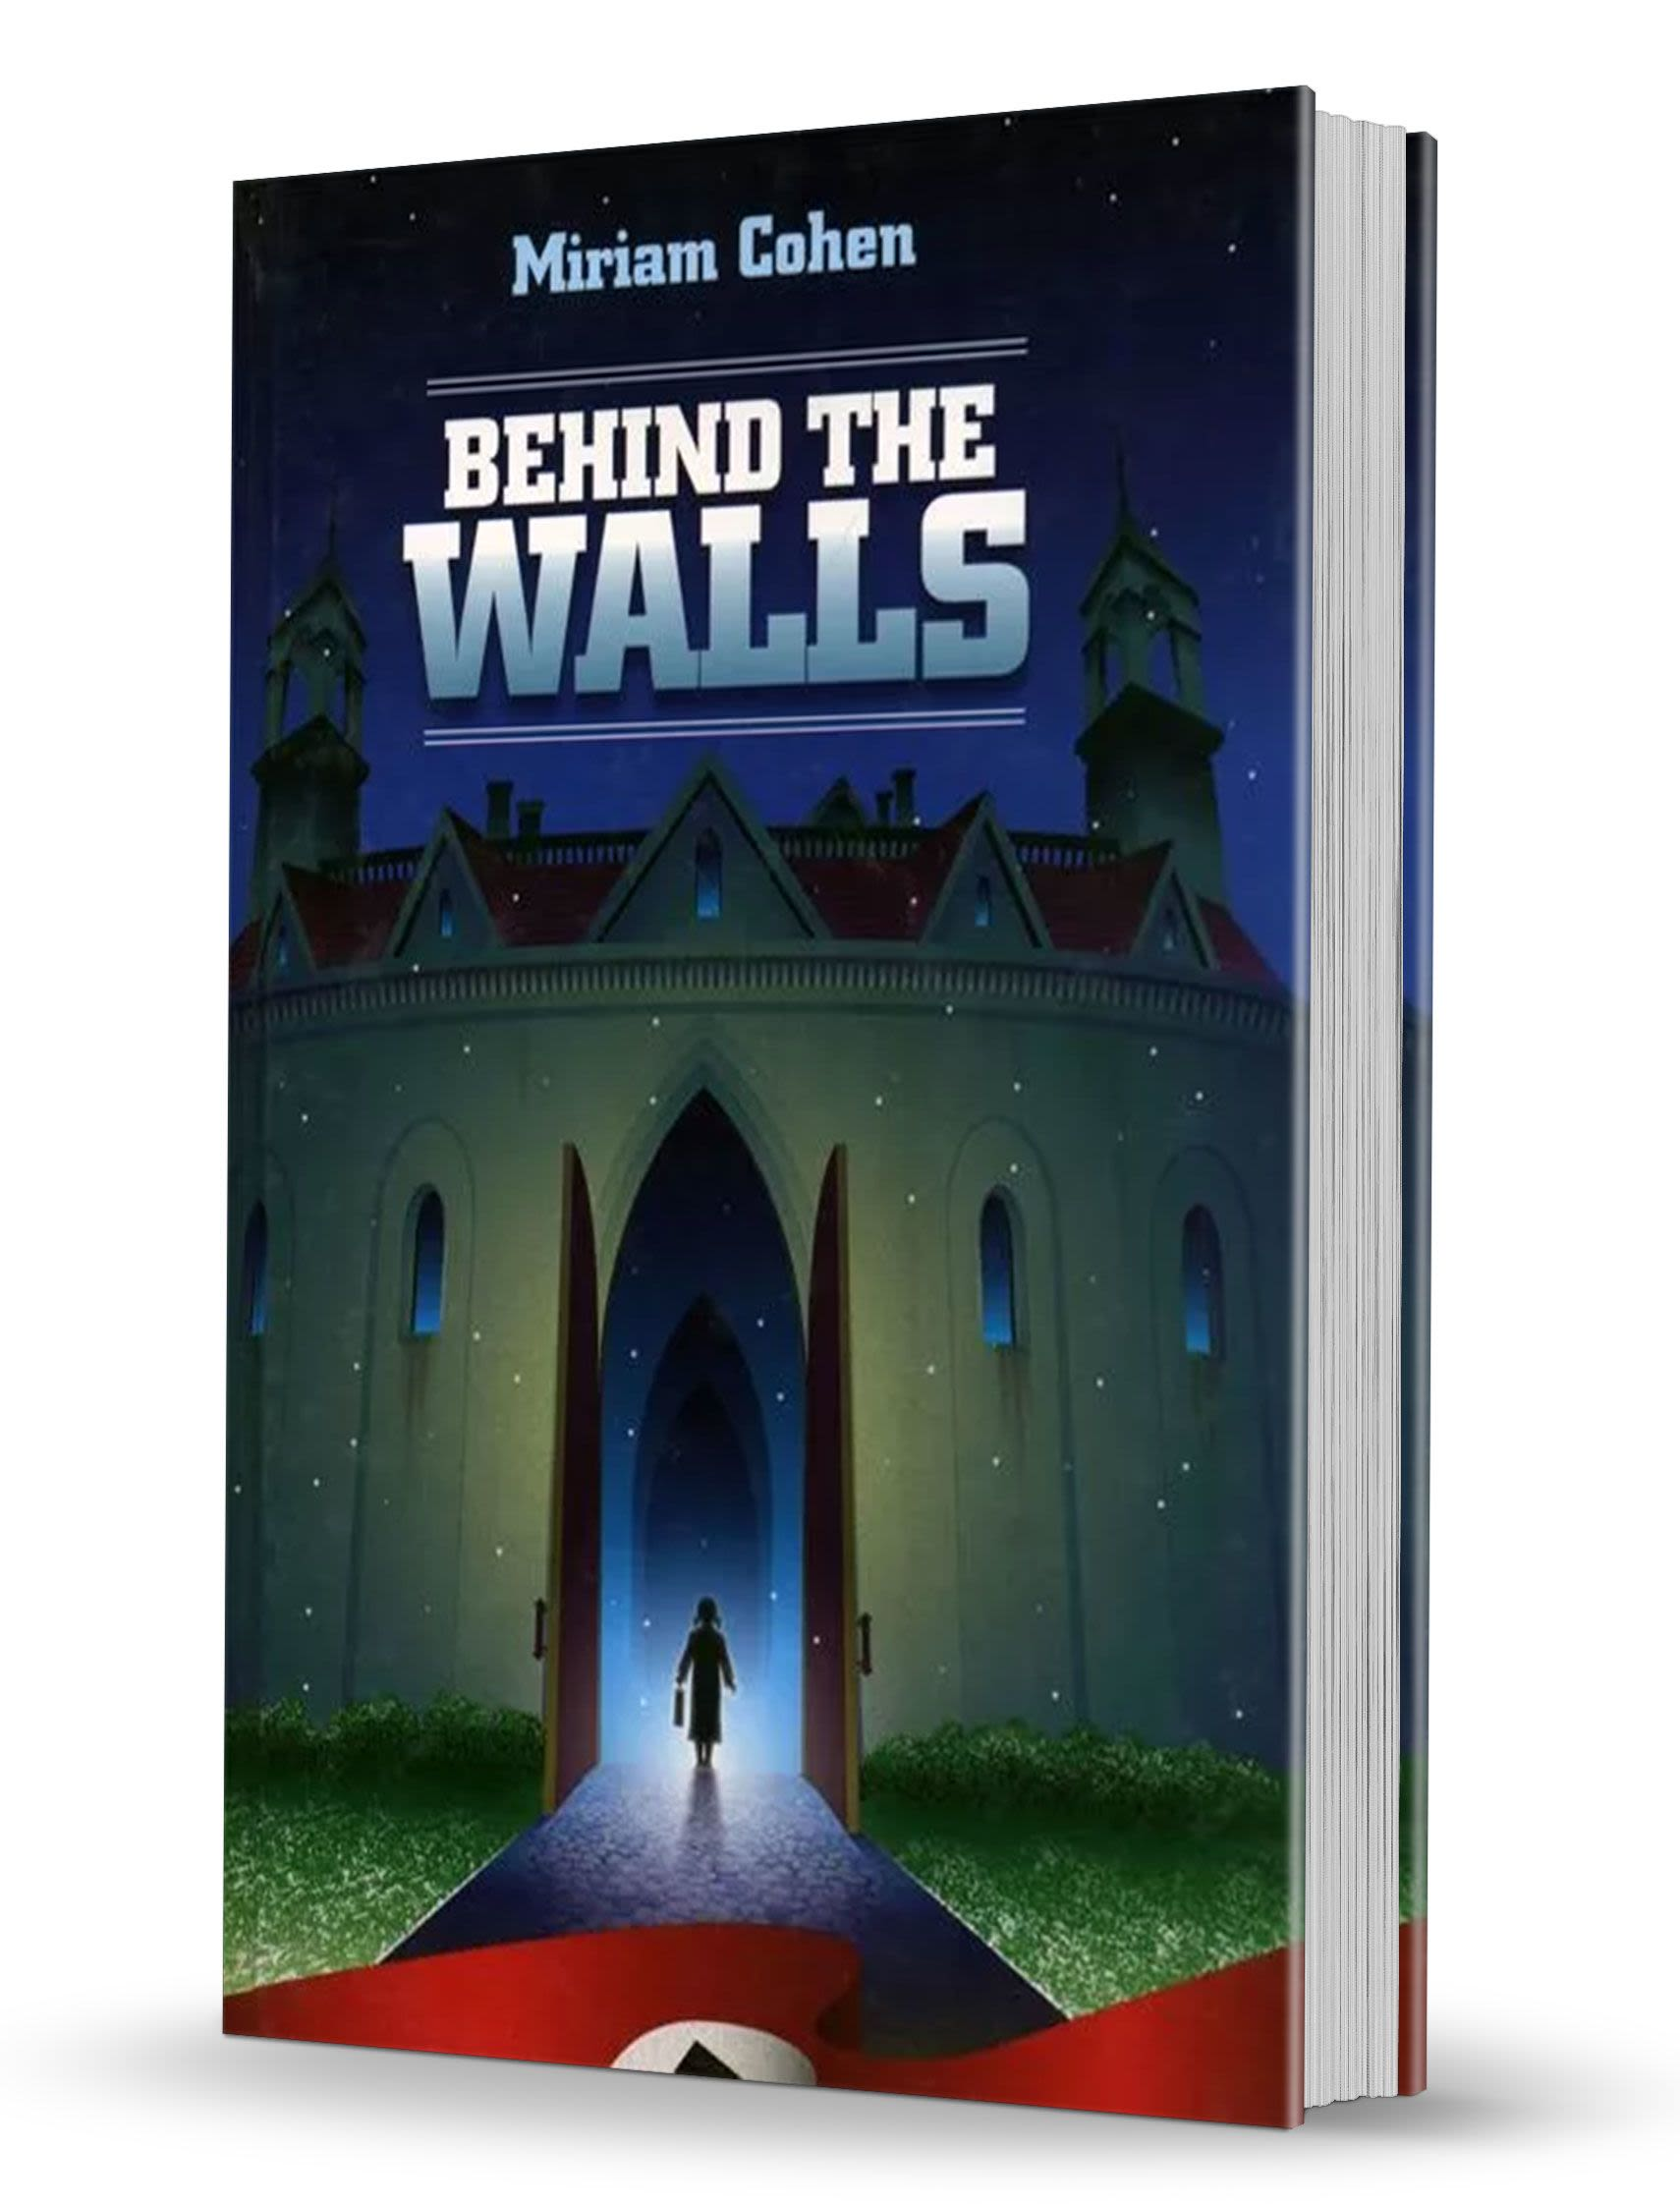 Behind the Walls